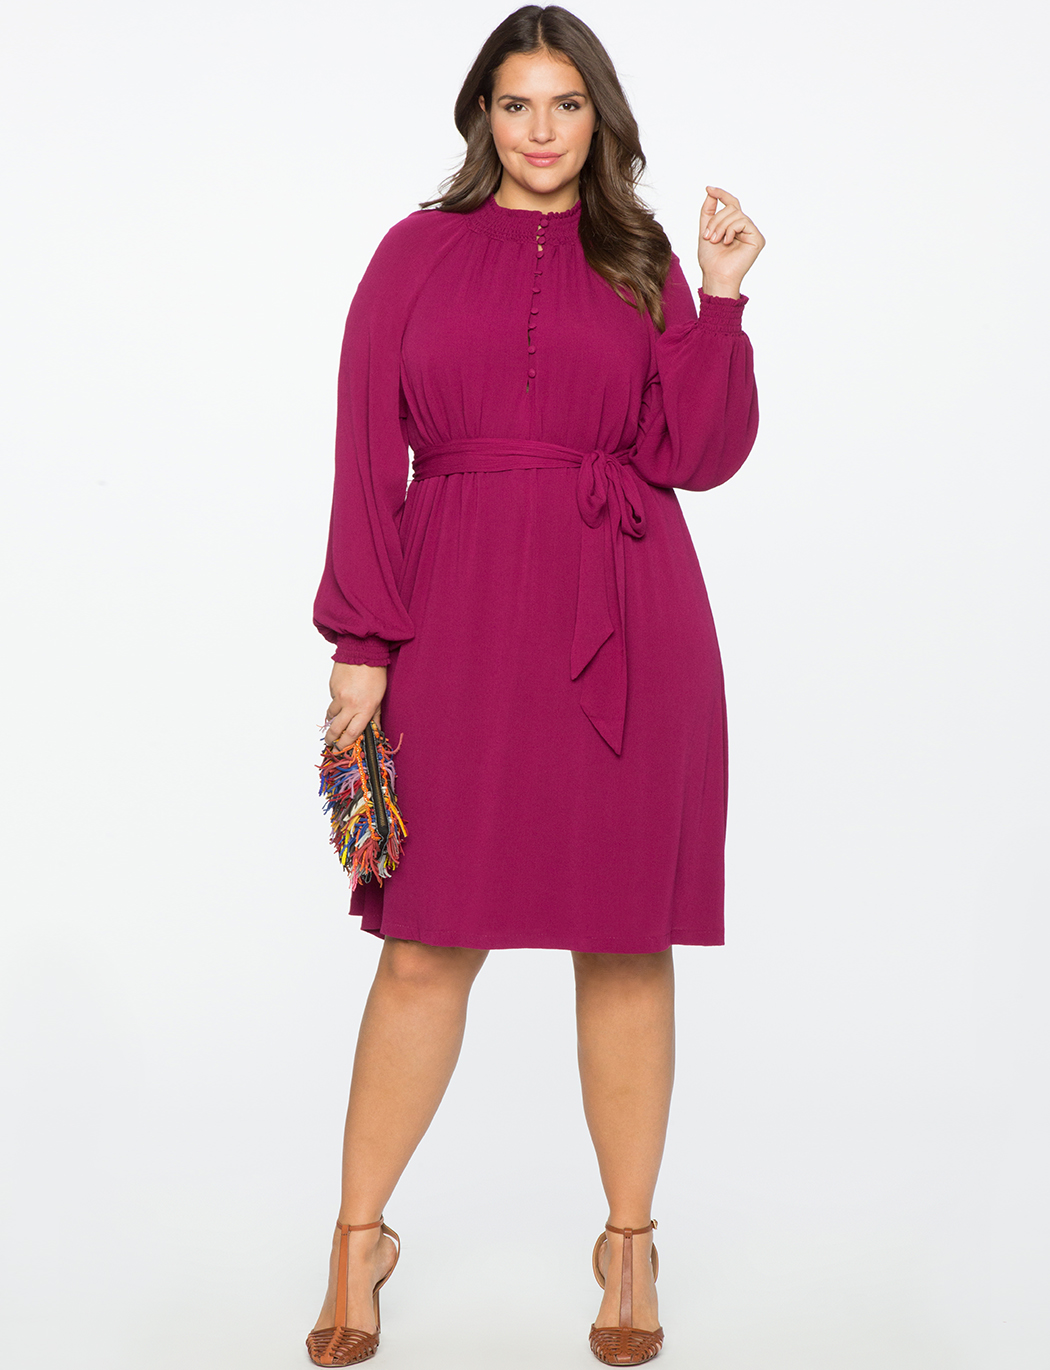 Smocked Collar Button Down Dress